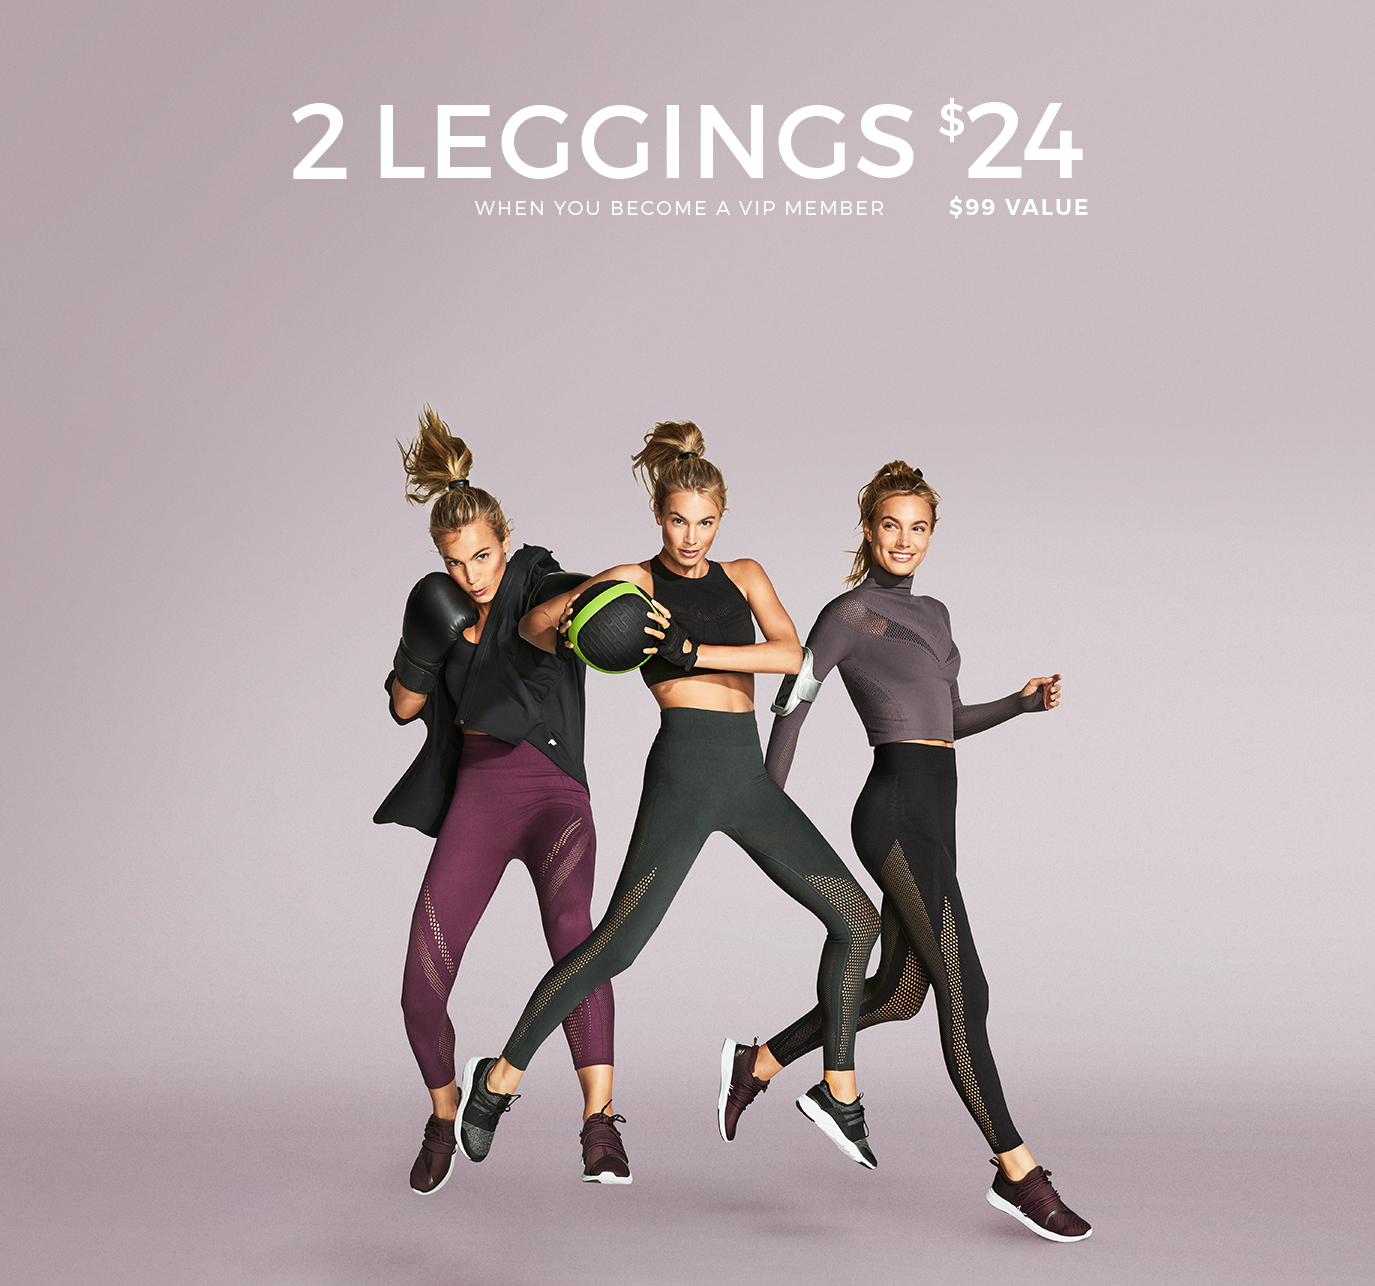 Activewear  Fitness   Workout Clothes   Fabletics by Kate Hudson Made to Move Leggings  2 for  24   99 Value  When you become a